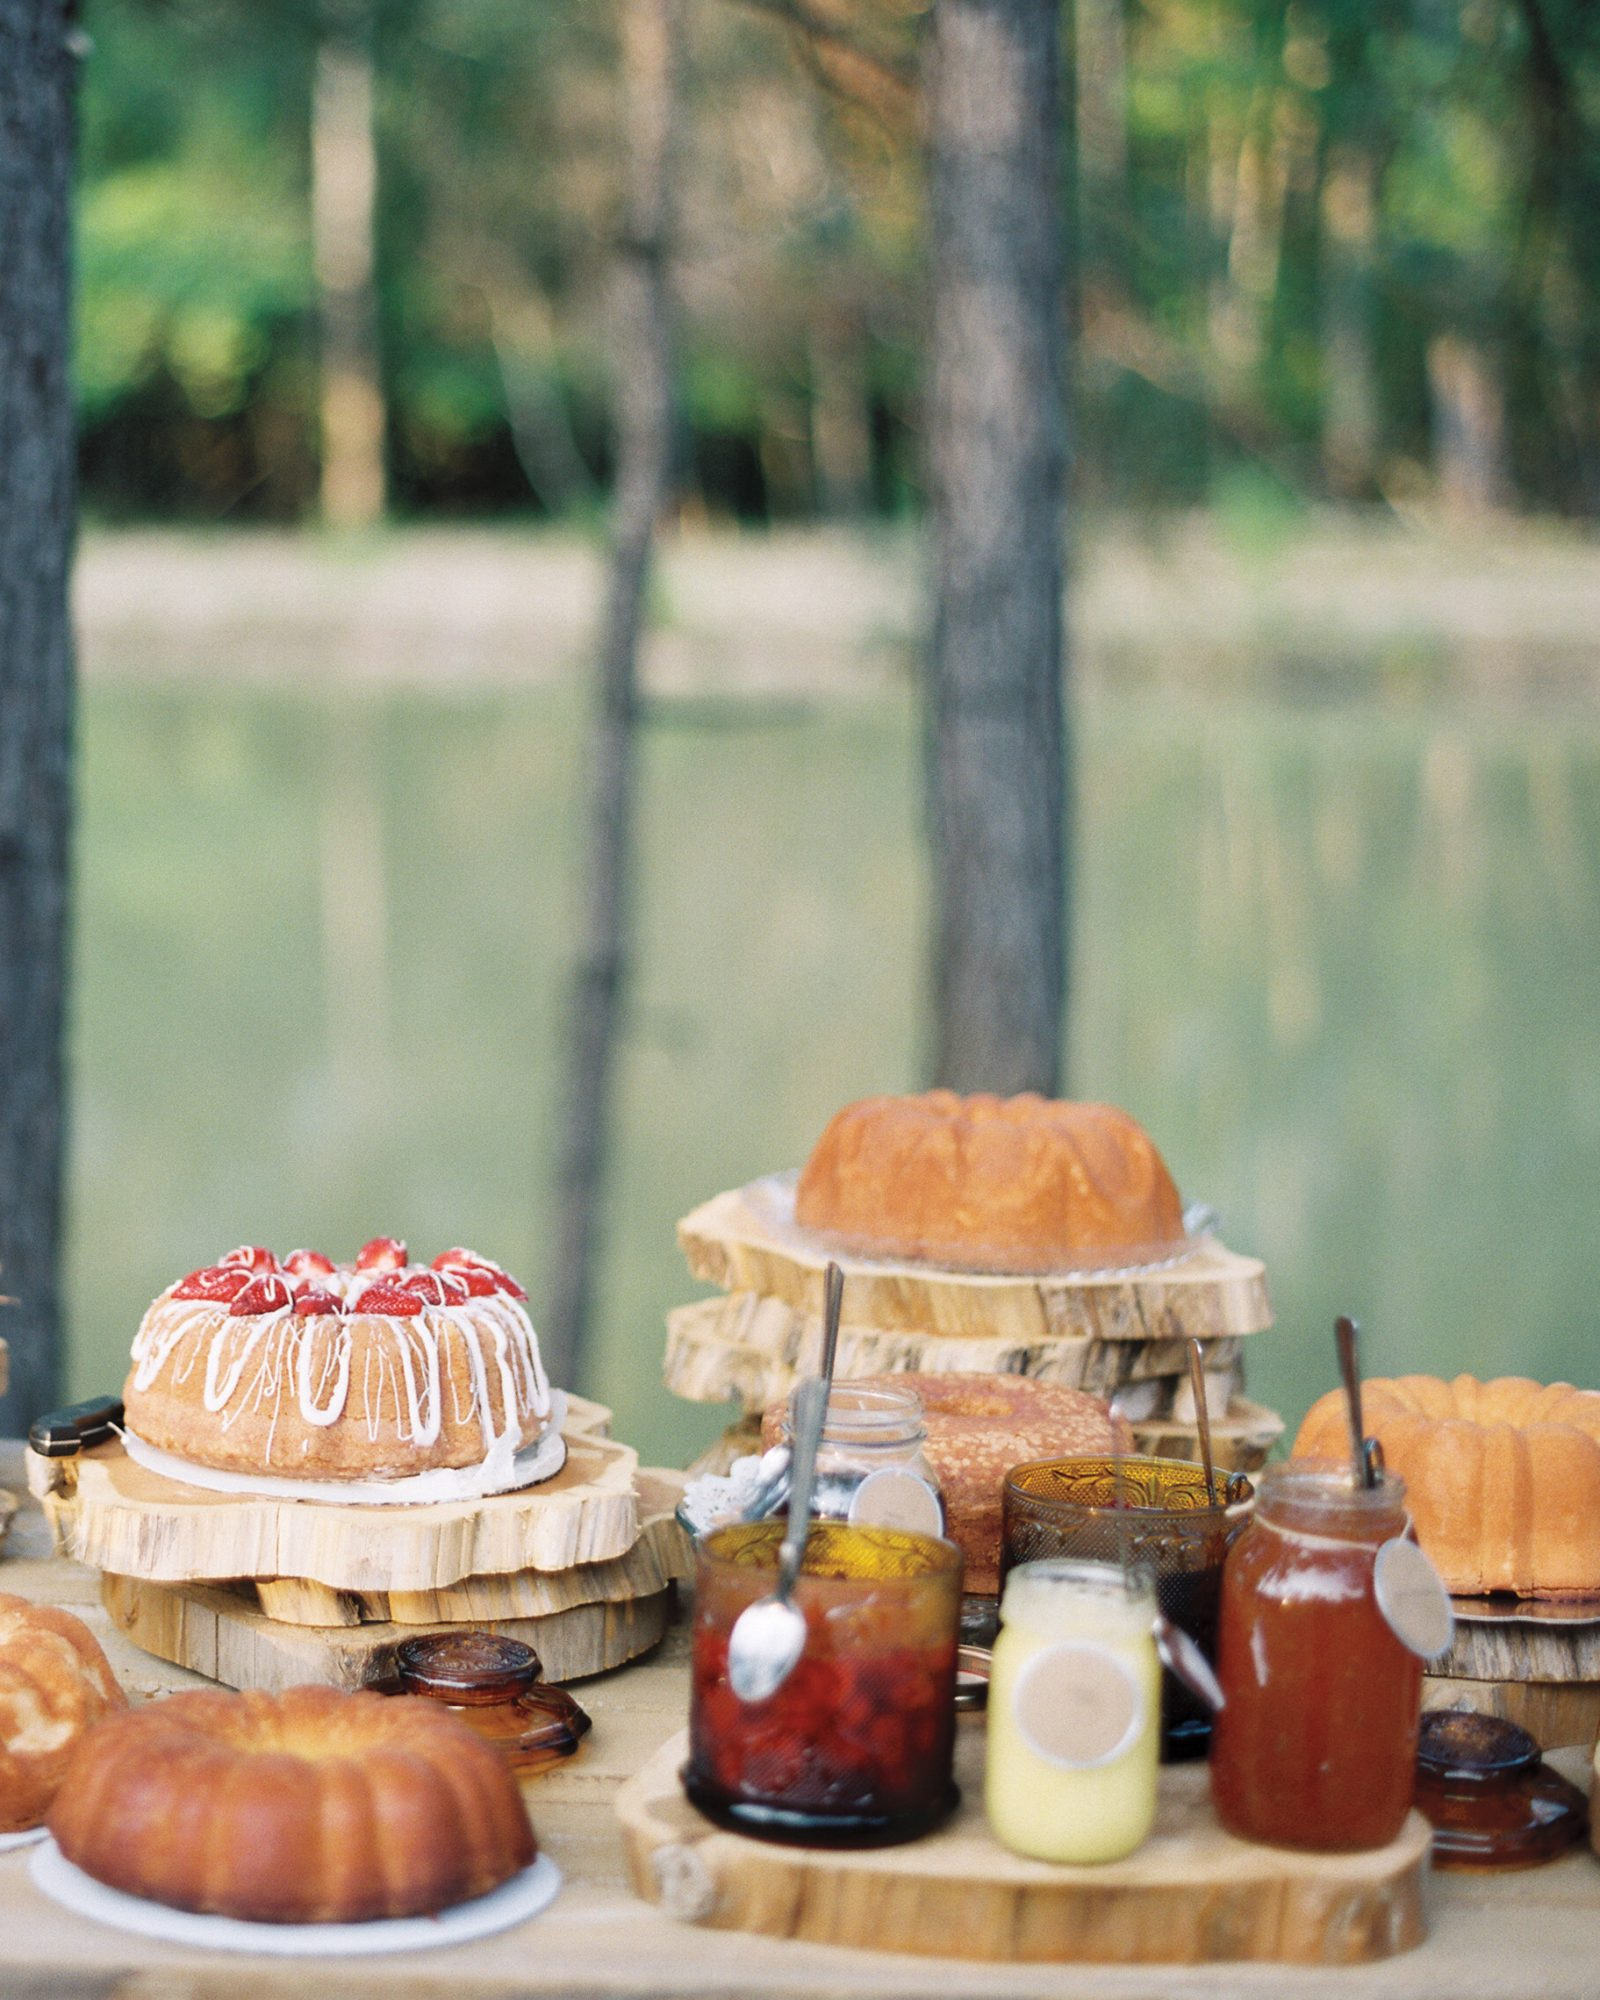 """The bride's relatives and friends teamed up to bake a spread of pies and pound cakes. """"It felt so Southern to have the ladies who played an important role in my life contribute in such a special way,"""" says Saron."""